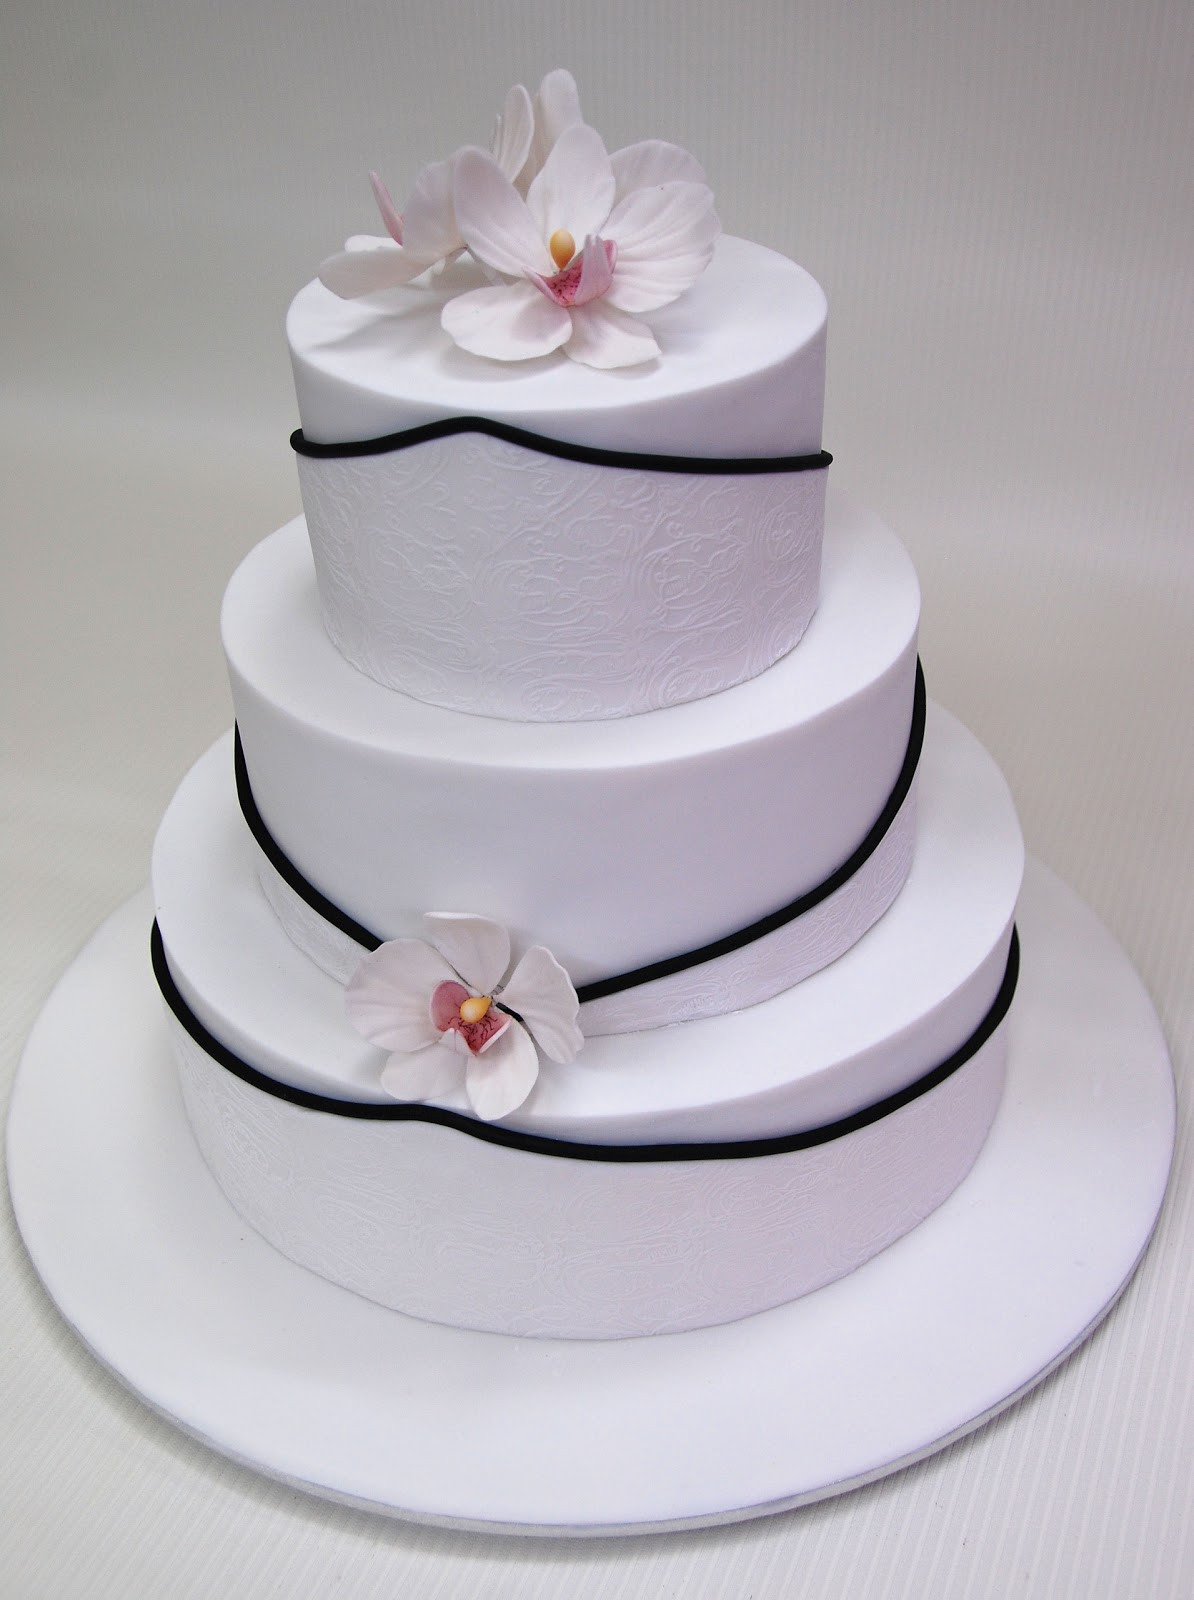 Wedding Cakes 3 Tier  Little Robin 3 Tier Wedding Cake with Orchids